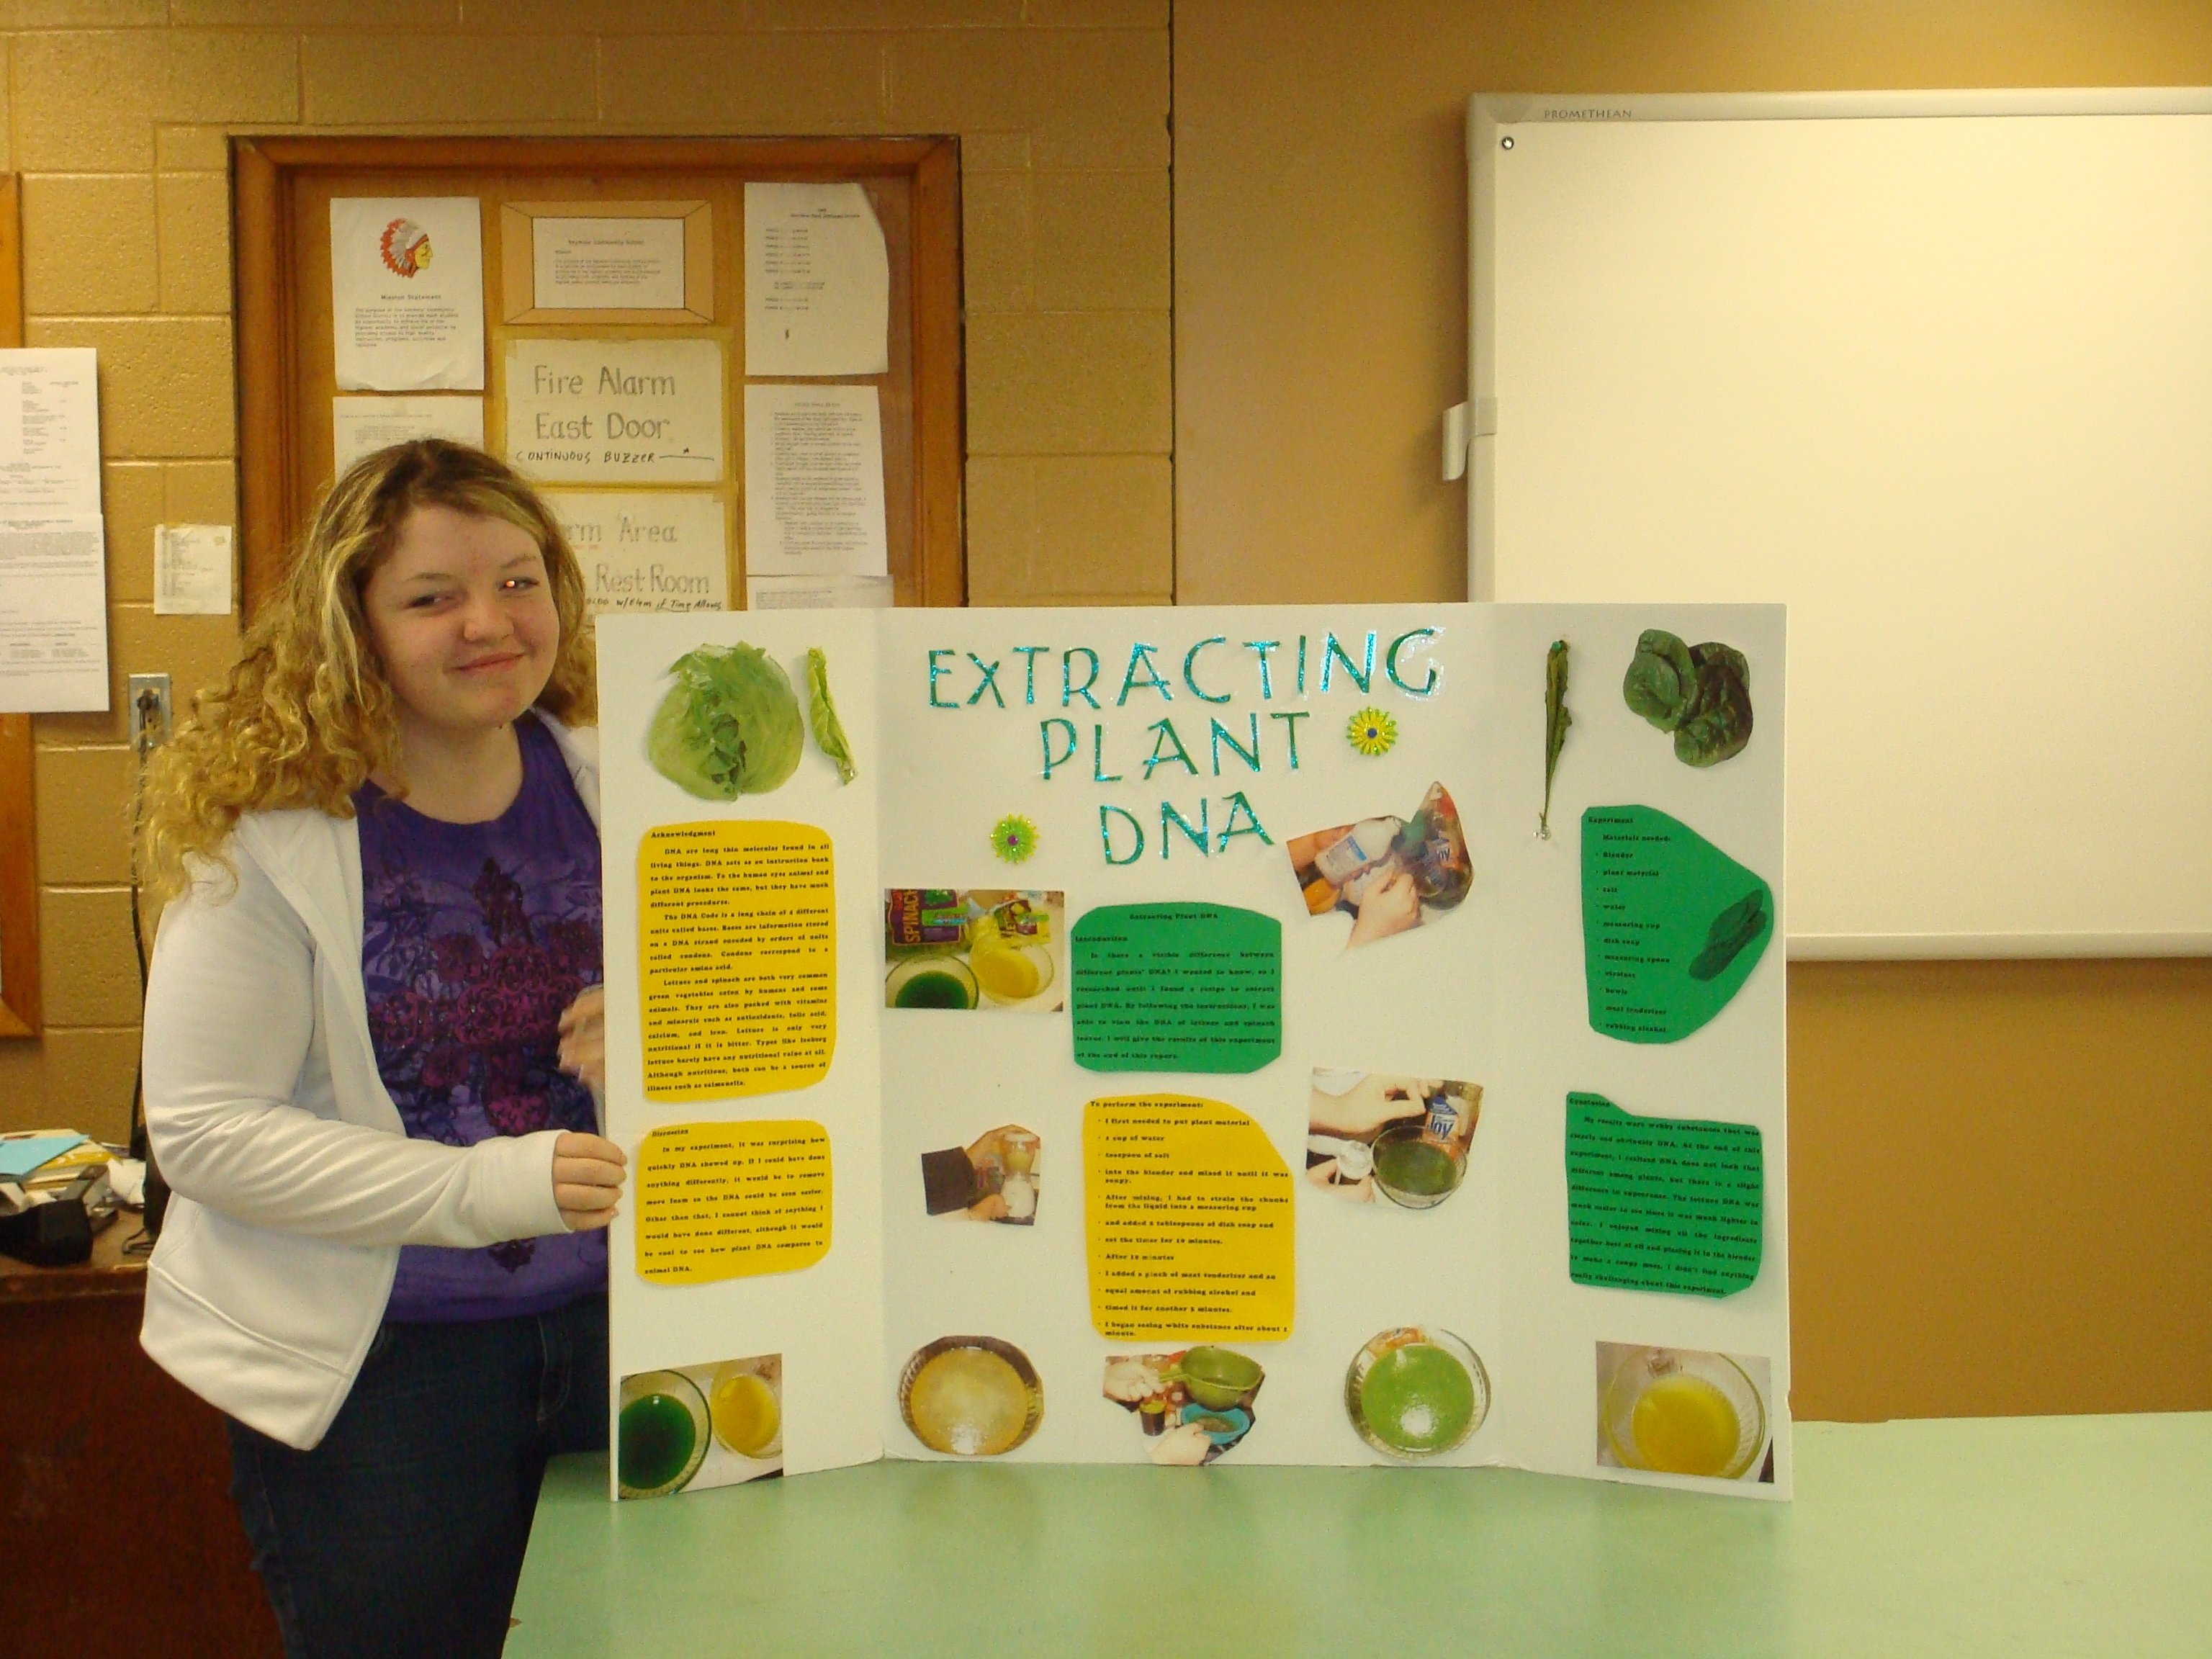 10 Awesome Second Grade Science Fair Project Ideas easy science fair projects for 3rd graders college paper help 15 2020